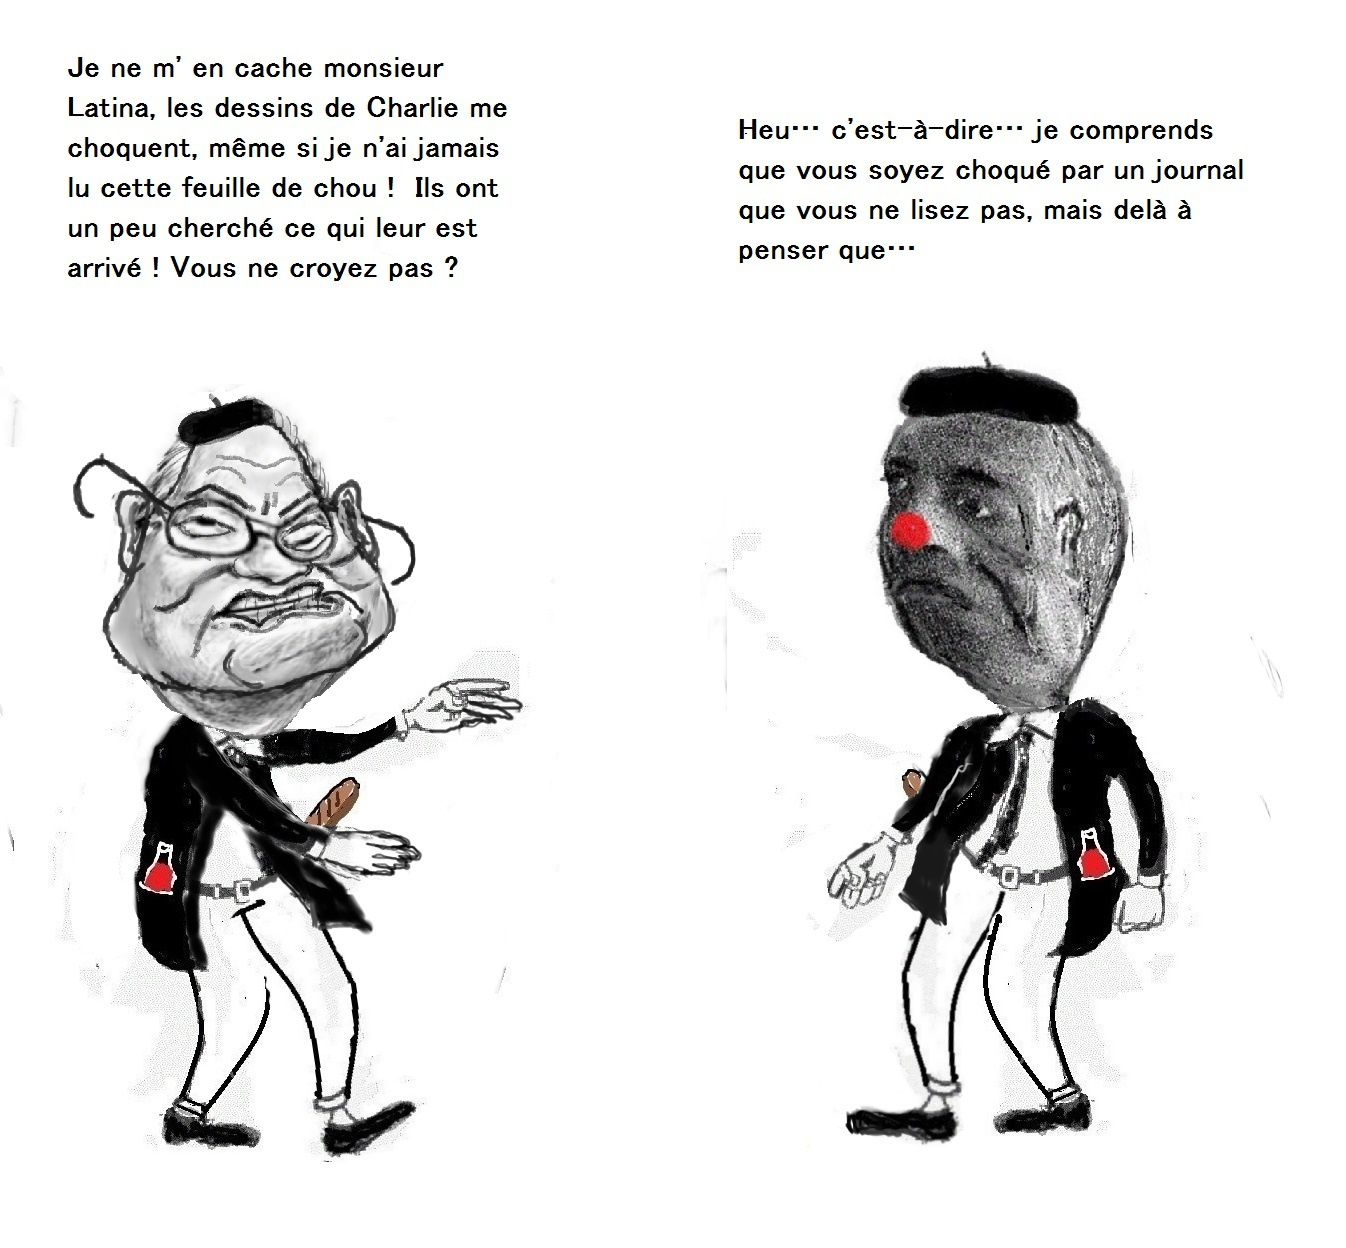 Dialogue de jean-Pierre Latina avec son voisin, Mr. Martinez